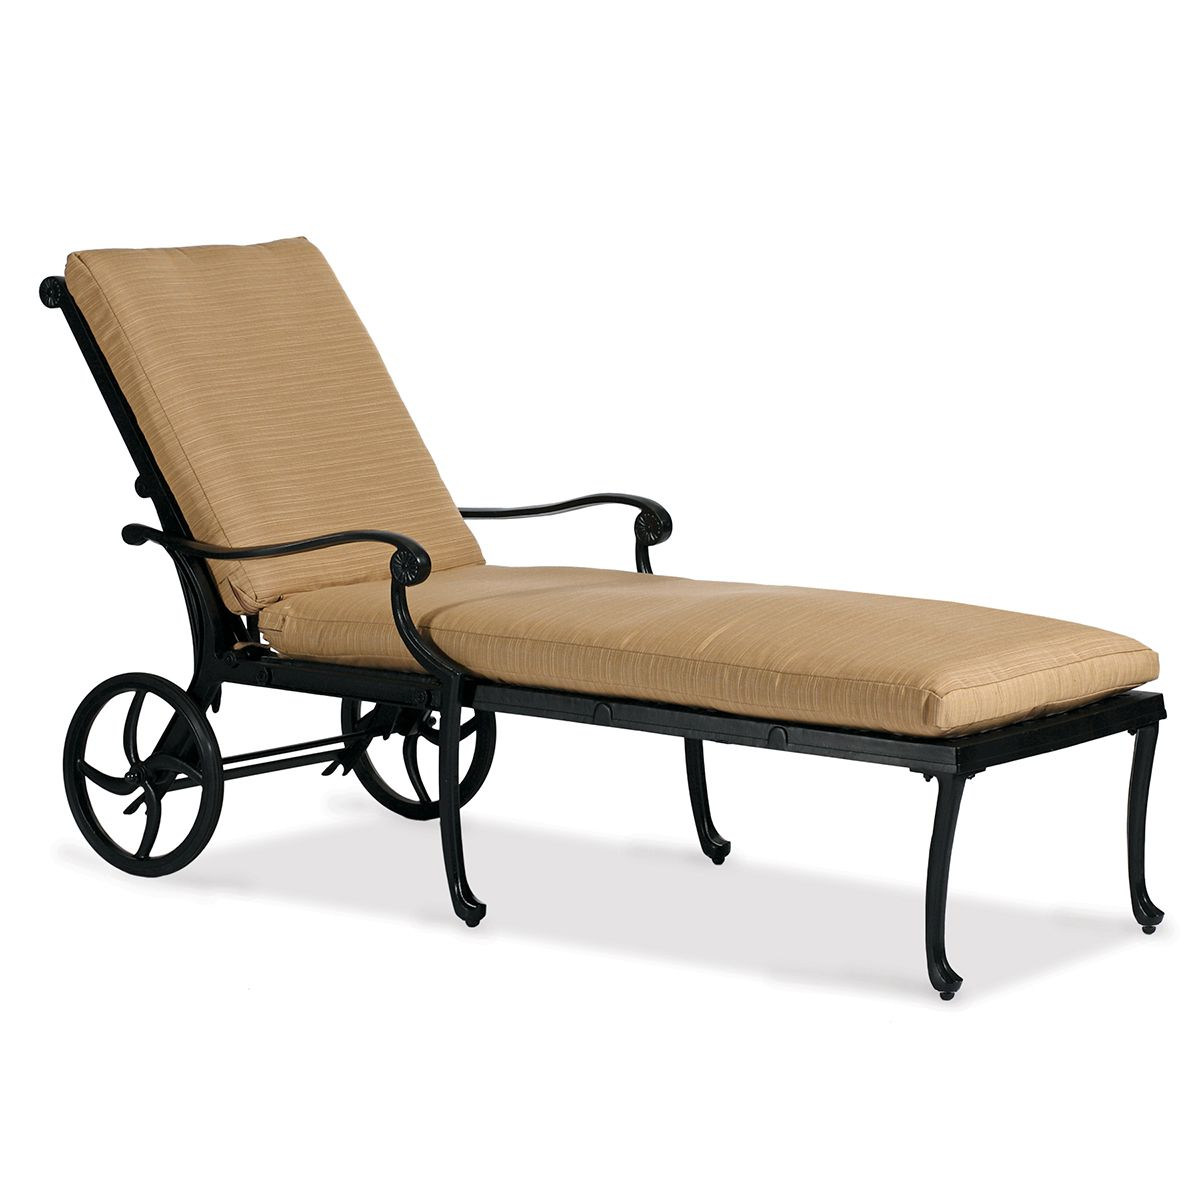 Aluminum Chaise Lounge|Hedges Collection|Hand Cast|Sunbrella Cushions